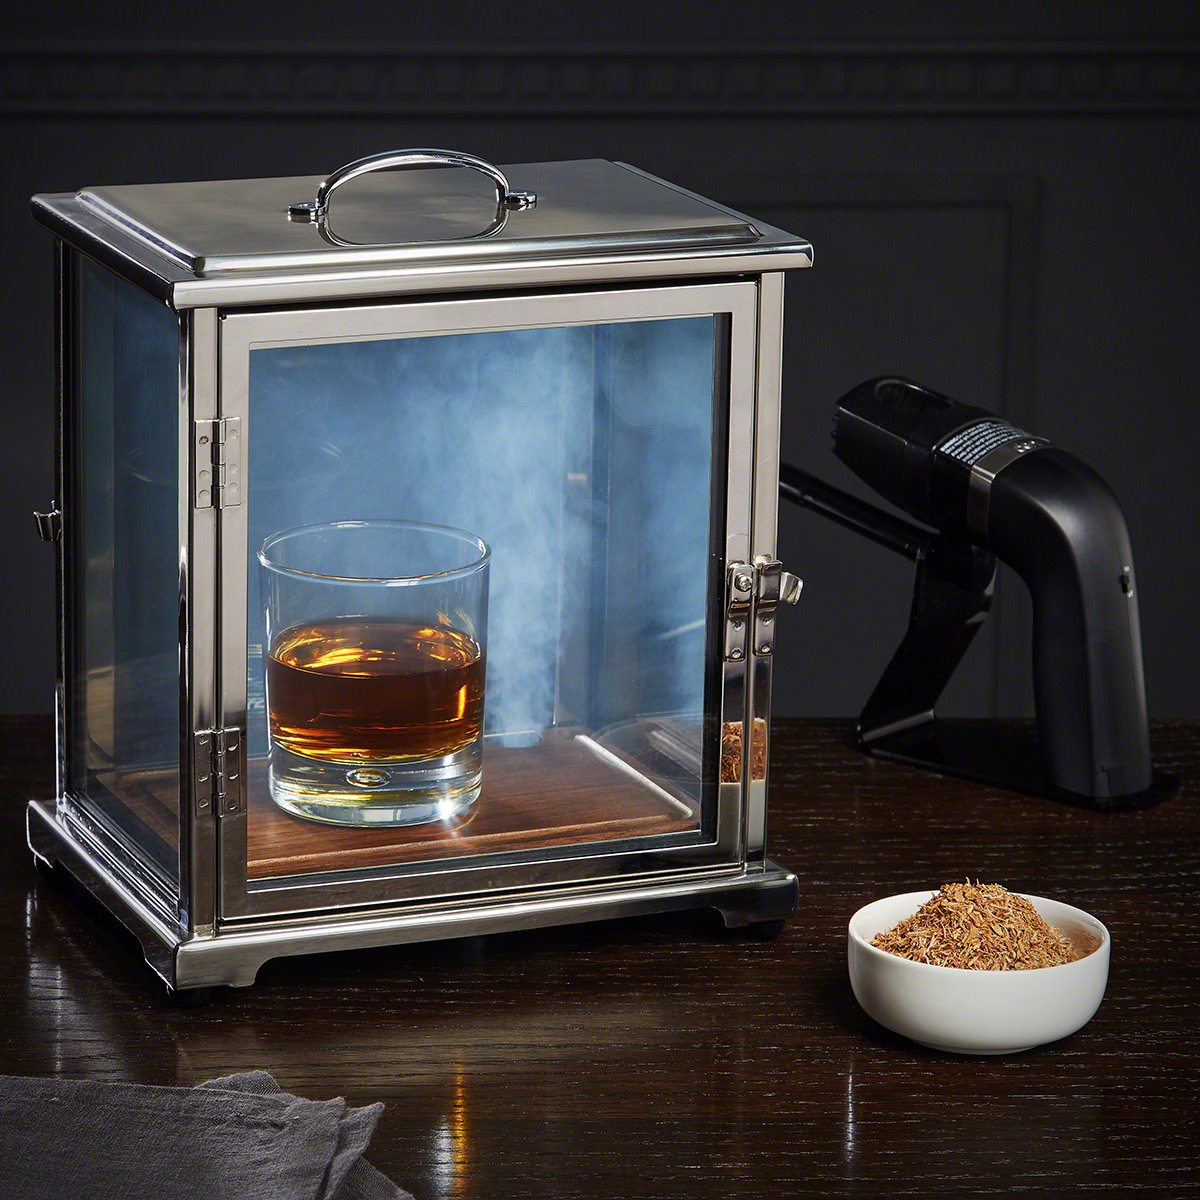 The-Smoke-Box-Deluxe-Drink-Smoker-System